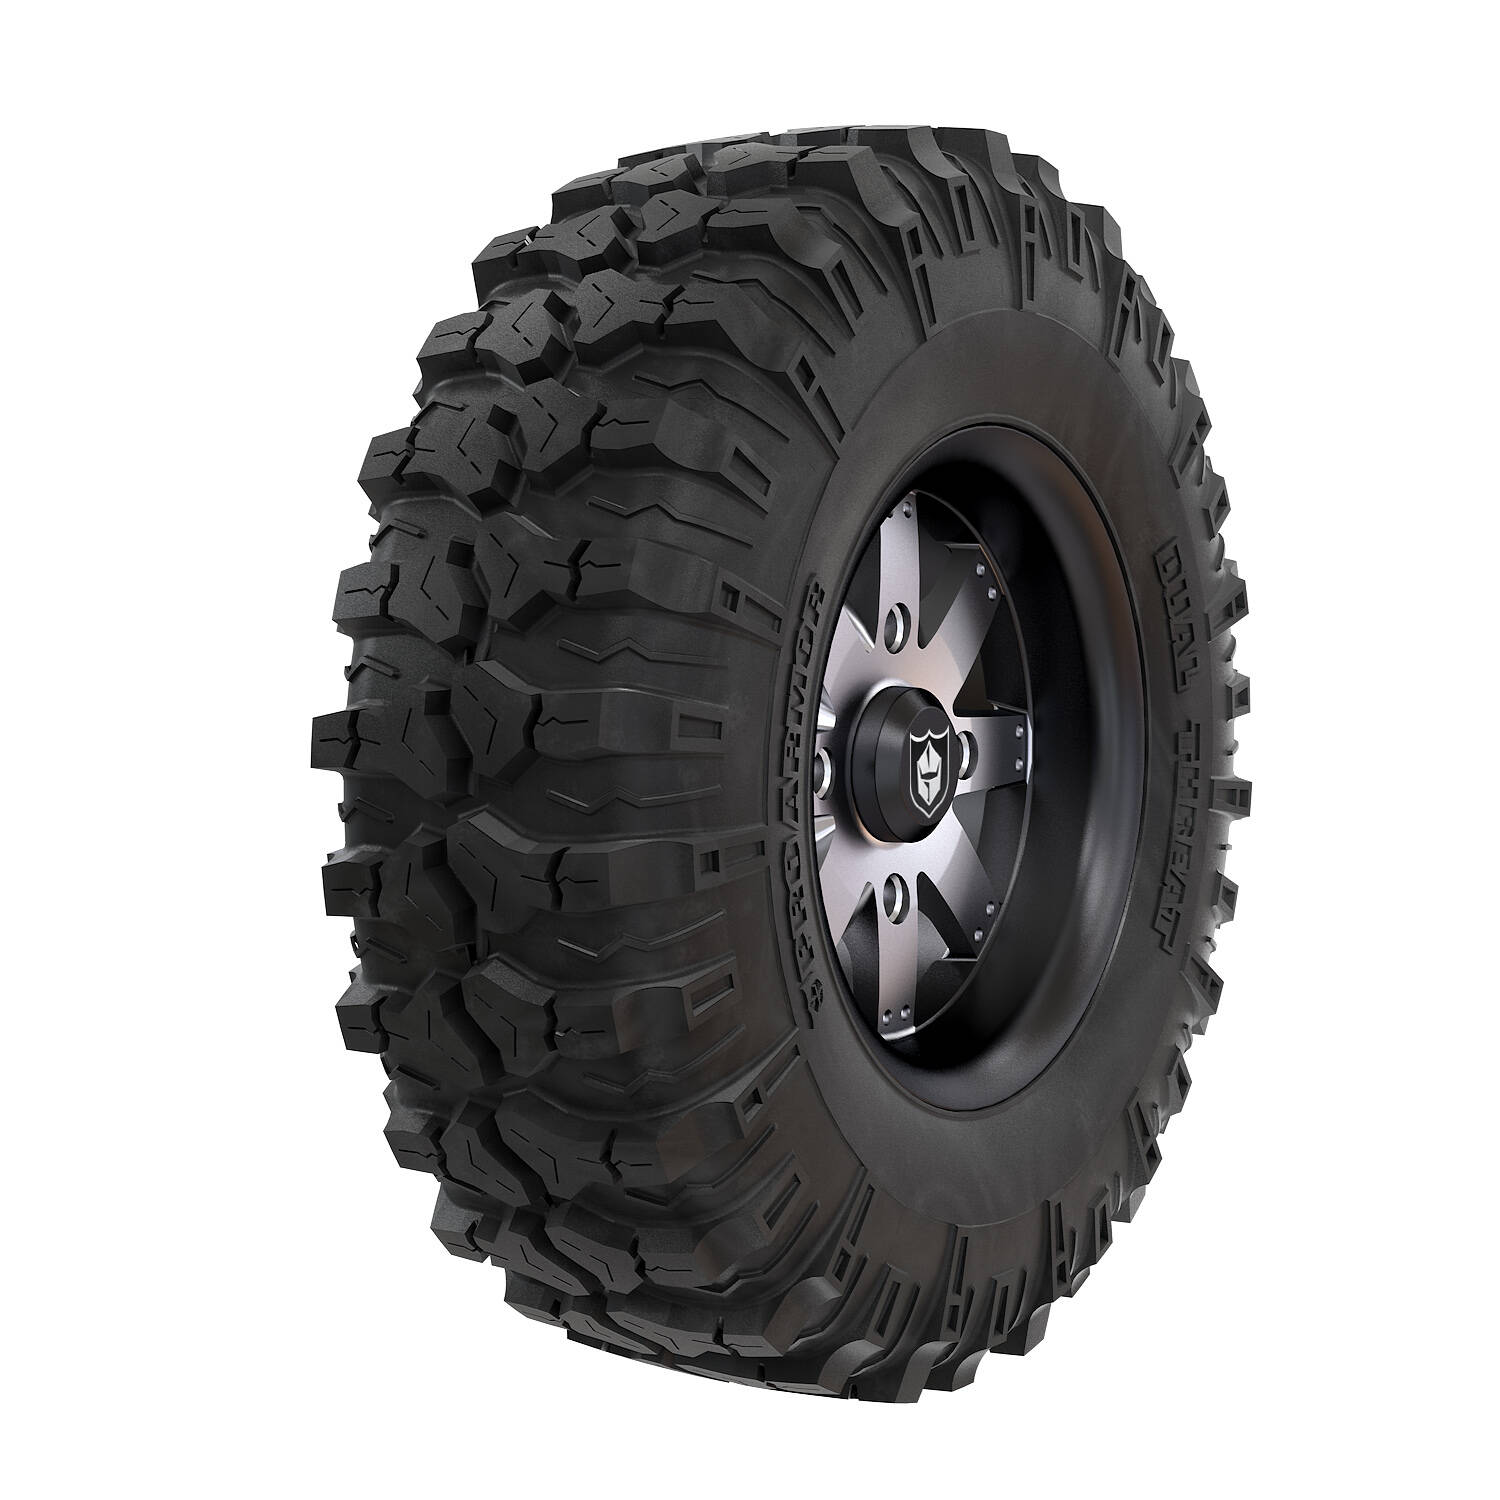 Pro Armor® Wheel & Tire Set: Amplify - Accent & Dual-Threat